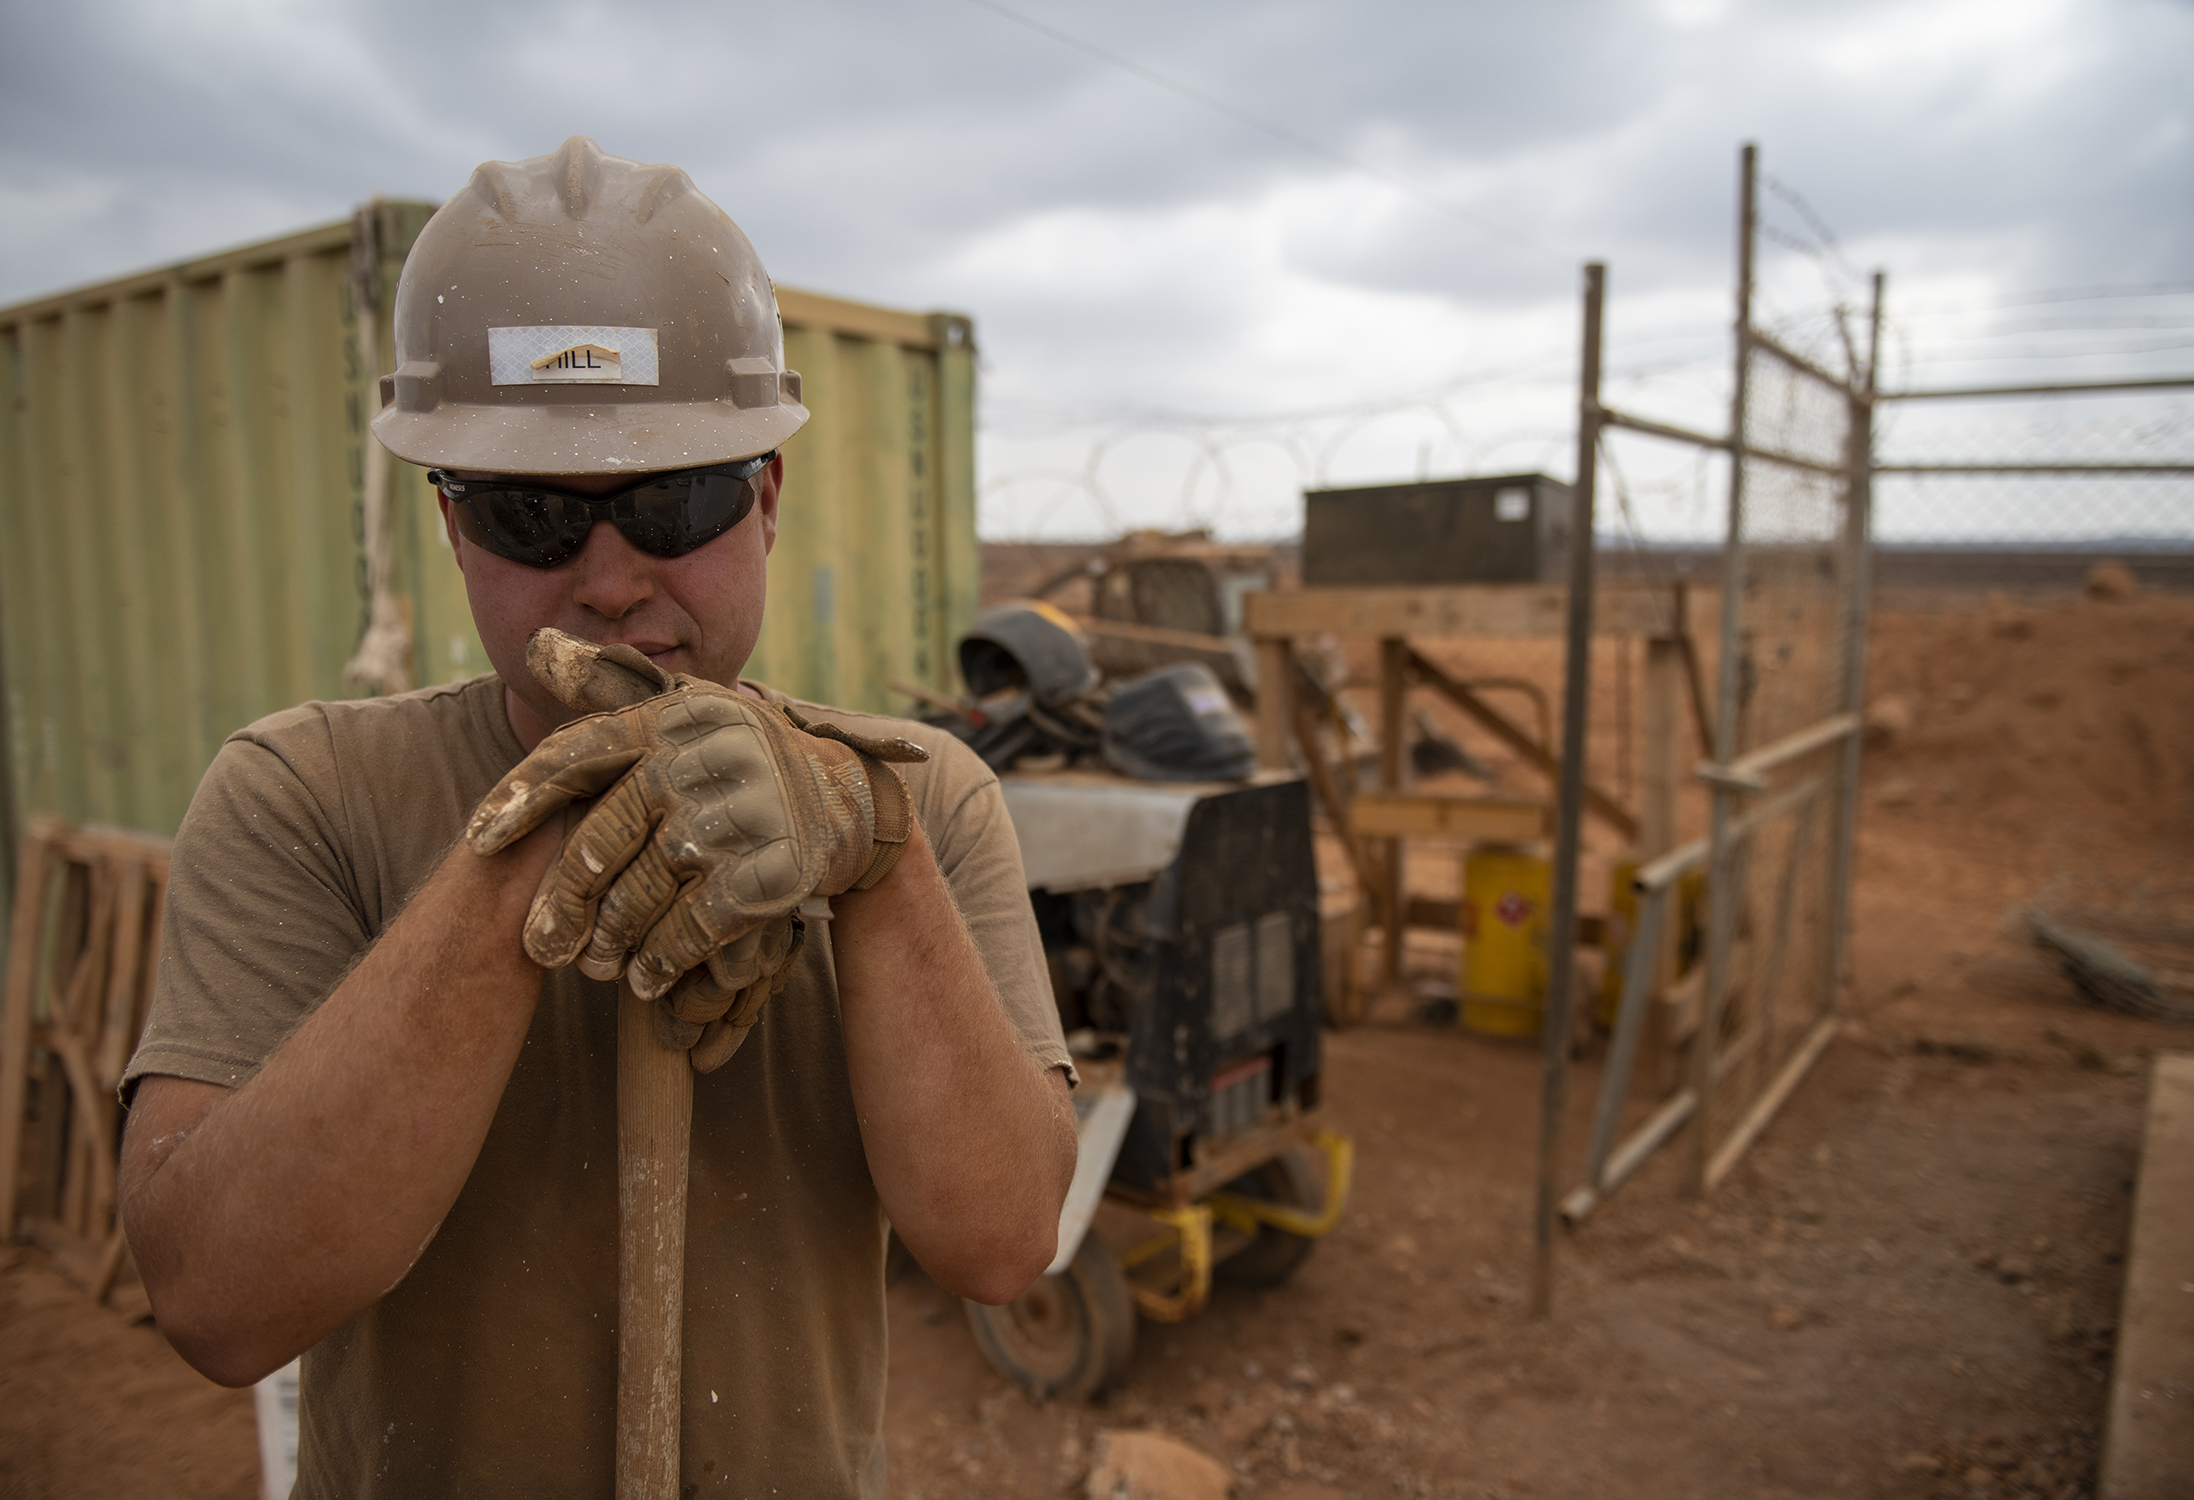 U.S. Navy Seaman Tyler Hill, a Seabee assigned to Naval Mobile Construction Battalion 1, Combined Joint Task Force-Horn of Africa, Camp Lemonnier, Djibouti, builds a fence during the construction of the future Ali Oune, Djibouti, Women's Medical Clinic, Dec. 27, 2018. The clinic is intended to enhance the Ministry of Health for Djibouti's ability to provide basic medical, birth and after care to the Ali Oune village and its more than 1,000 residents and rural neighbors. (U.S. Air Force photo by Tech. Sgt. Shawn Nickel)